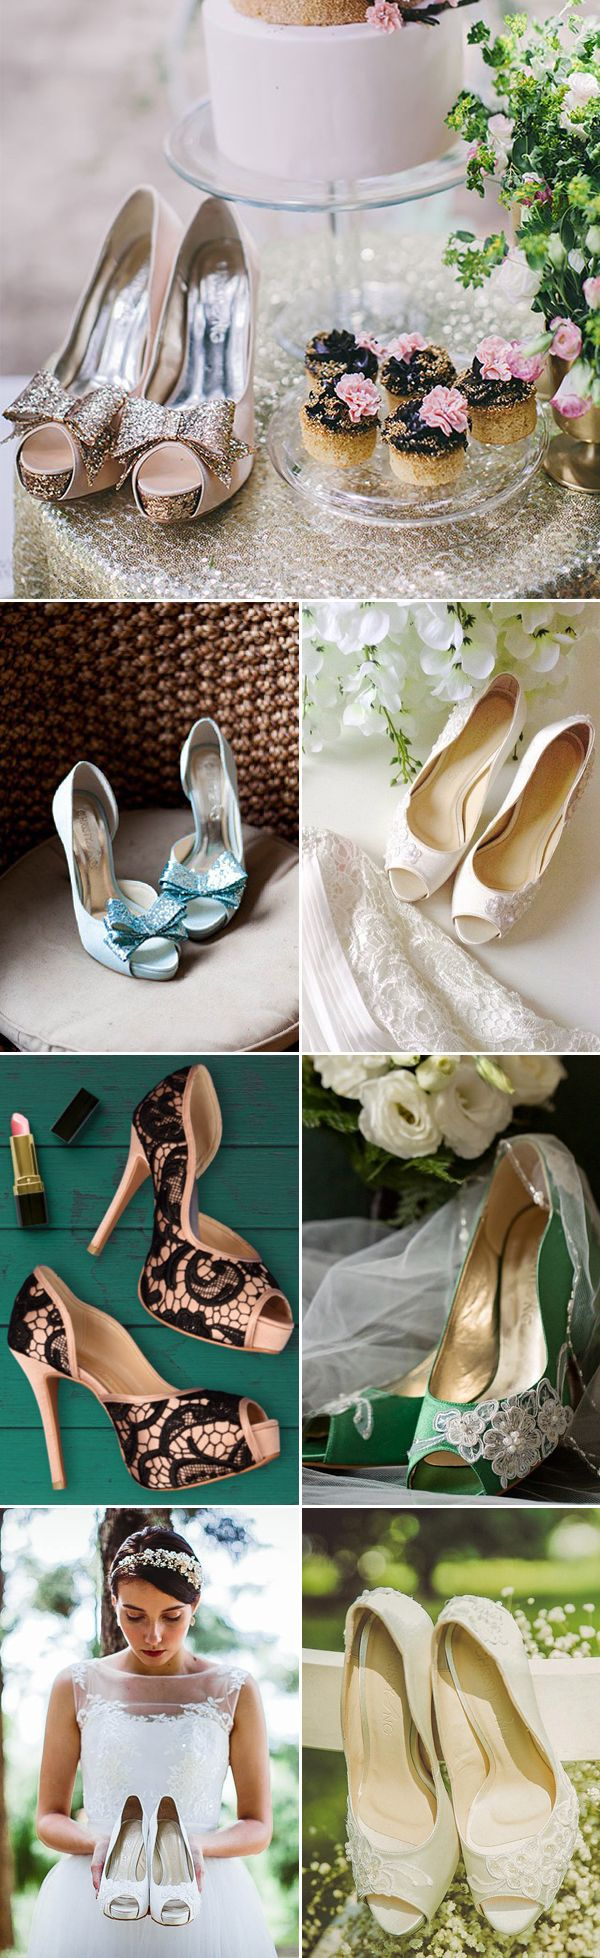 Christy Ng Sequined and Colorful Wedding Shoes